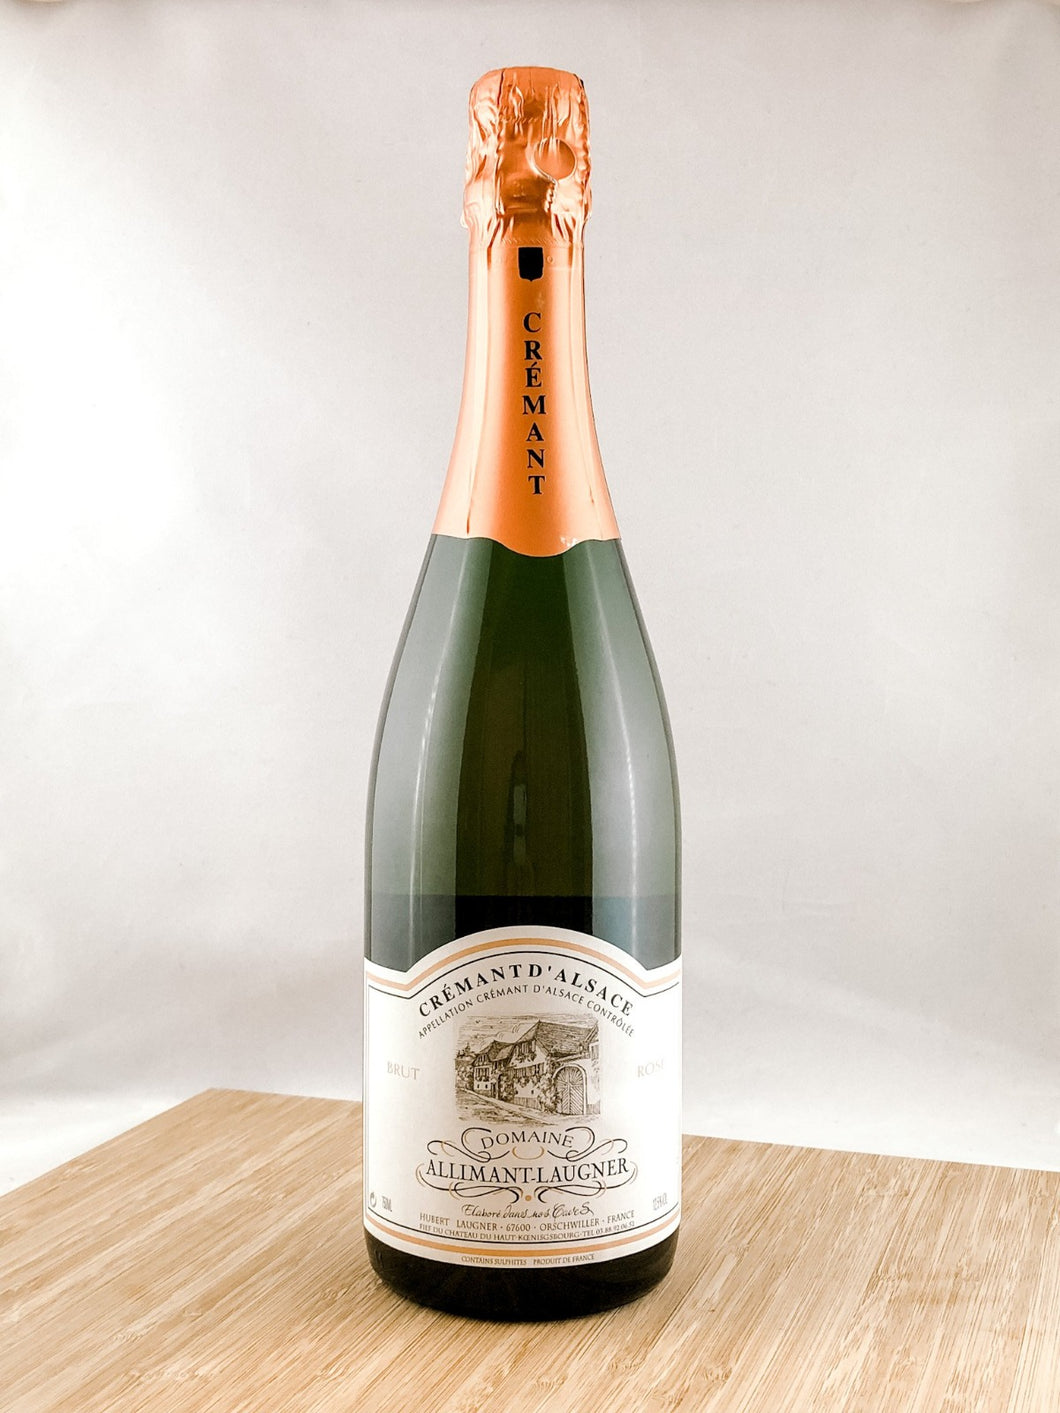 Allimant-Laugner Cremant The Bubbles Club Subscription, our champagne delivery, and great for unique gift ideas.